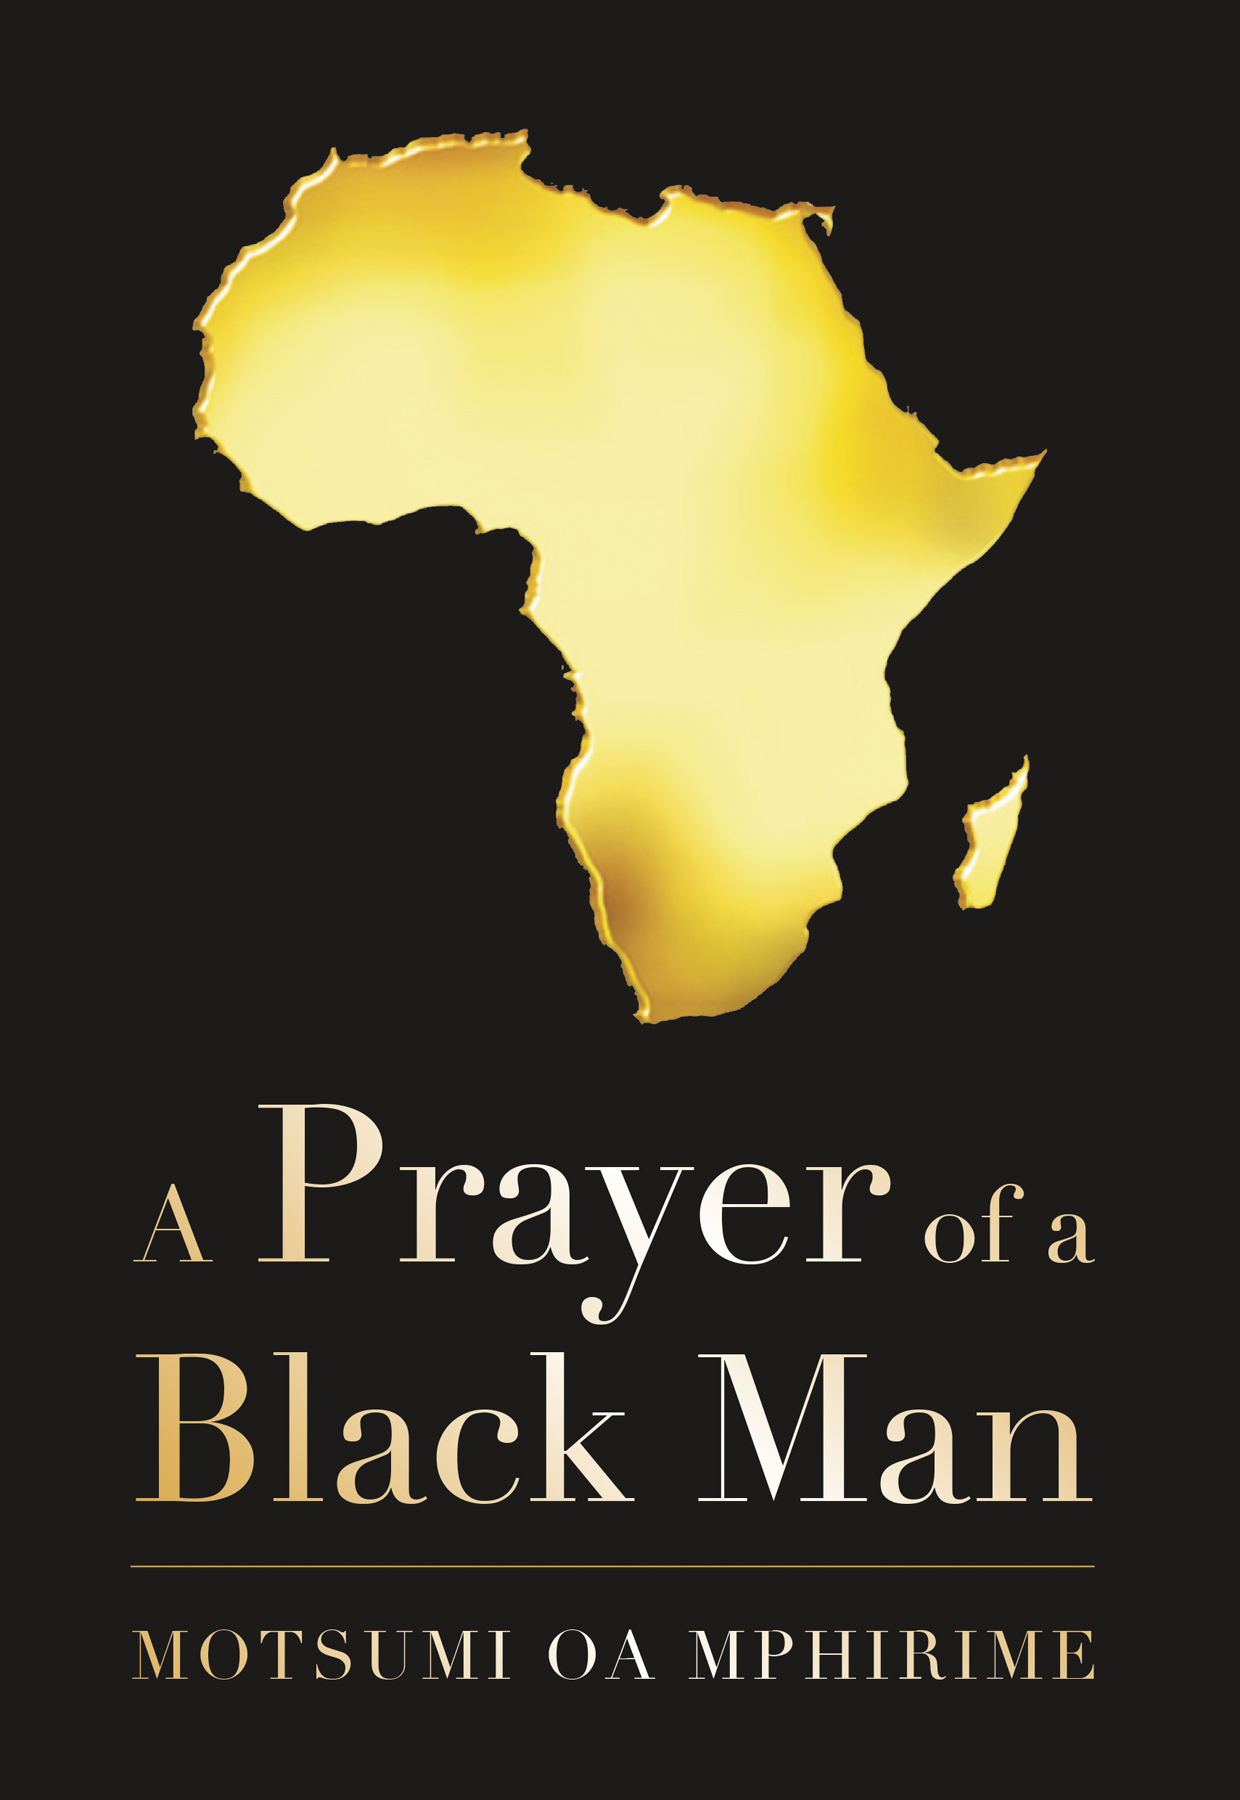 A PRAYER OF A BLACKMAN